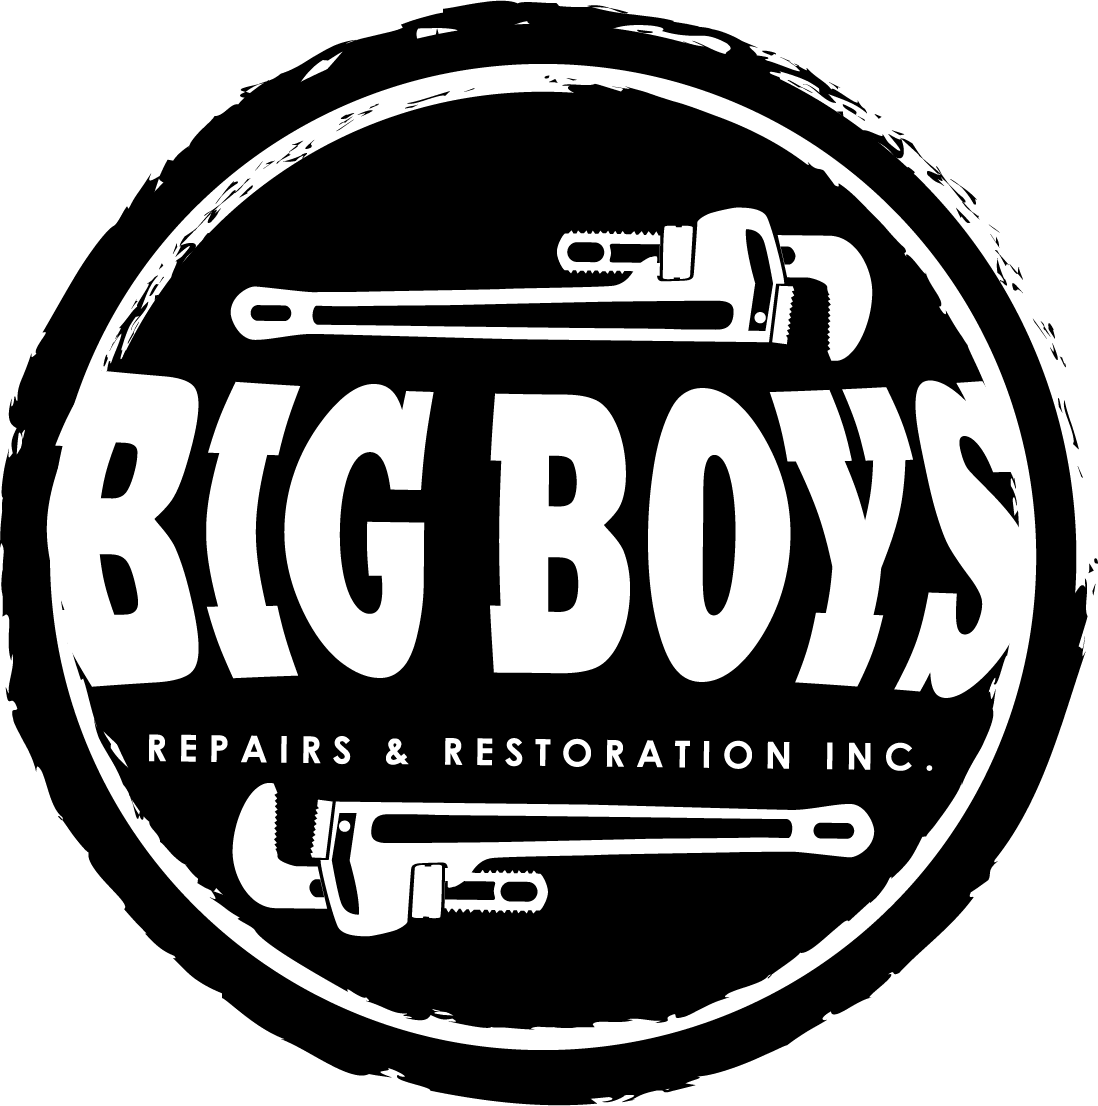 Big Boys Repairs & Restoration Inc